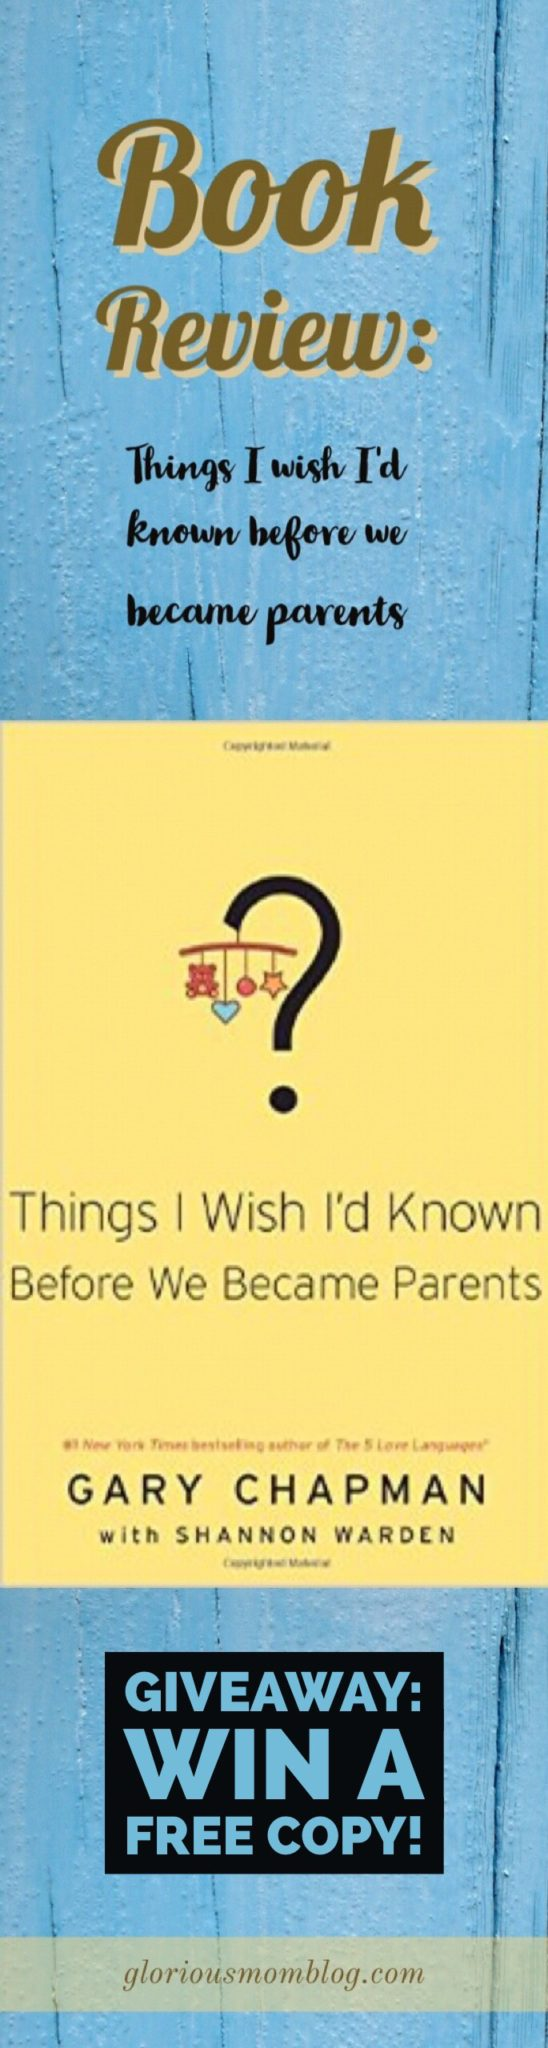 gary chapman things i wish i known pdf